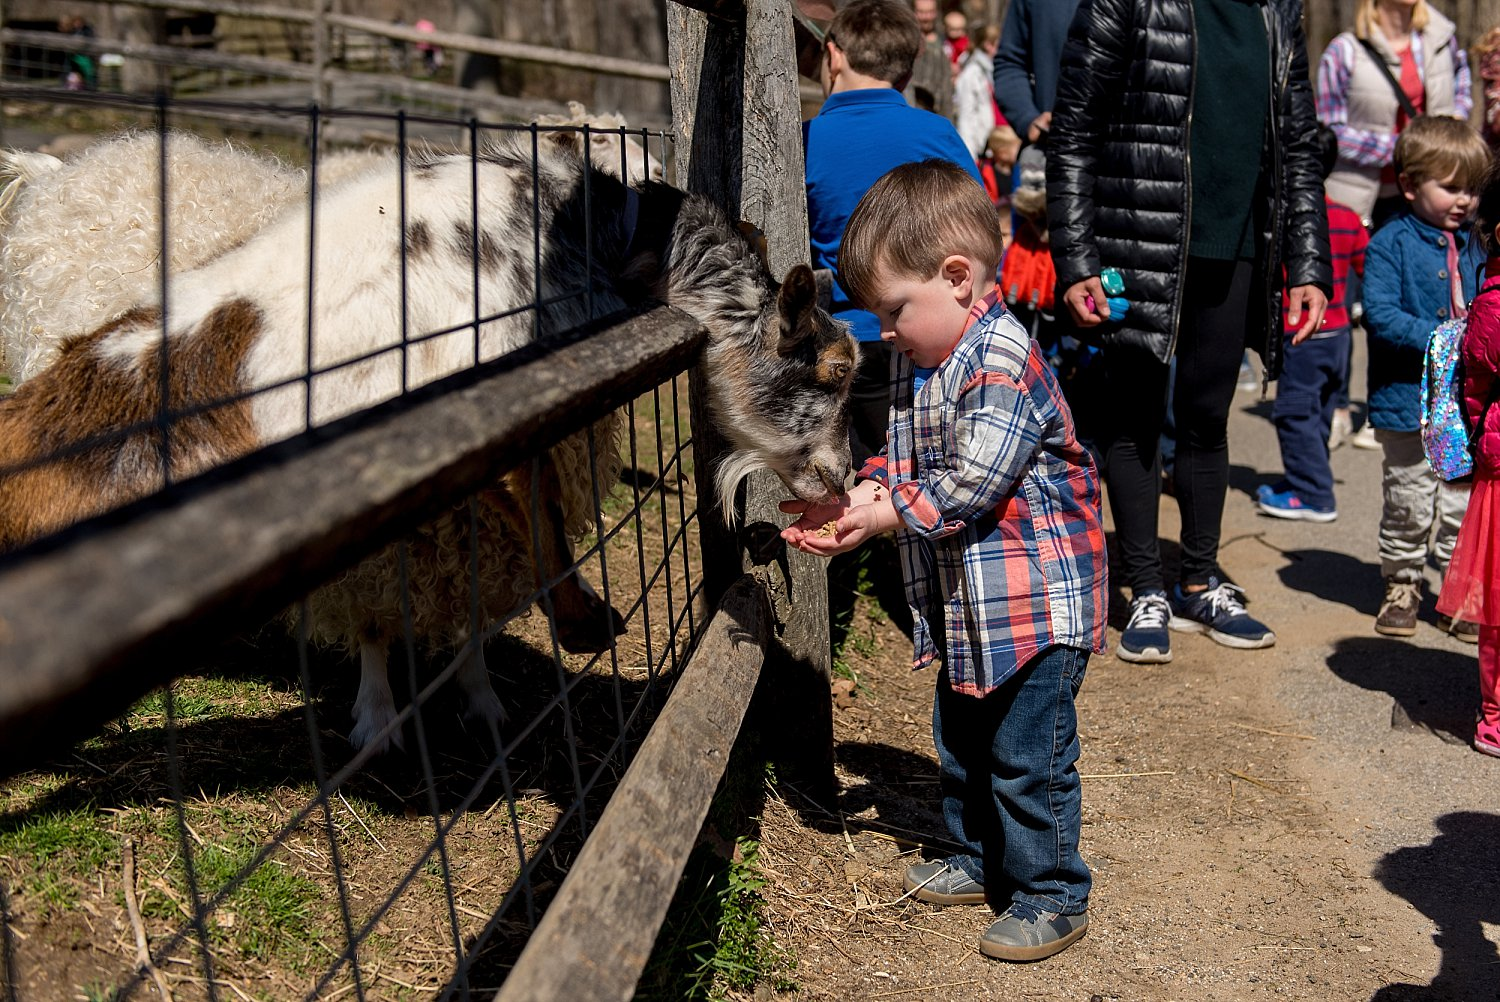 Birthday boy feeding a goat at Stamford Nature Center. CT family photographer